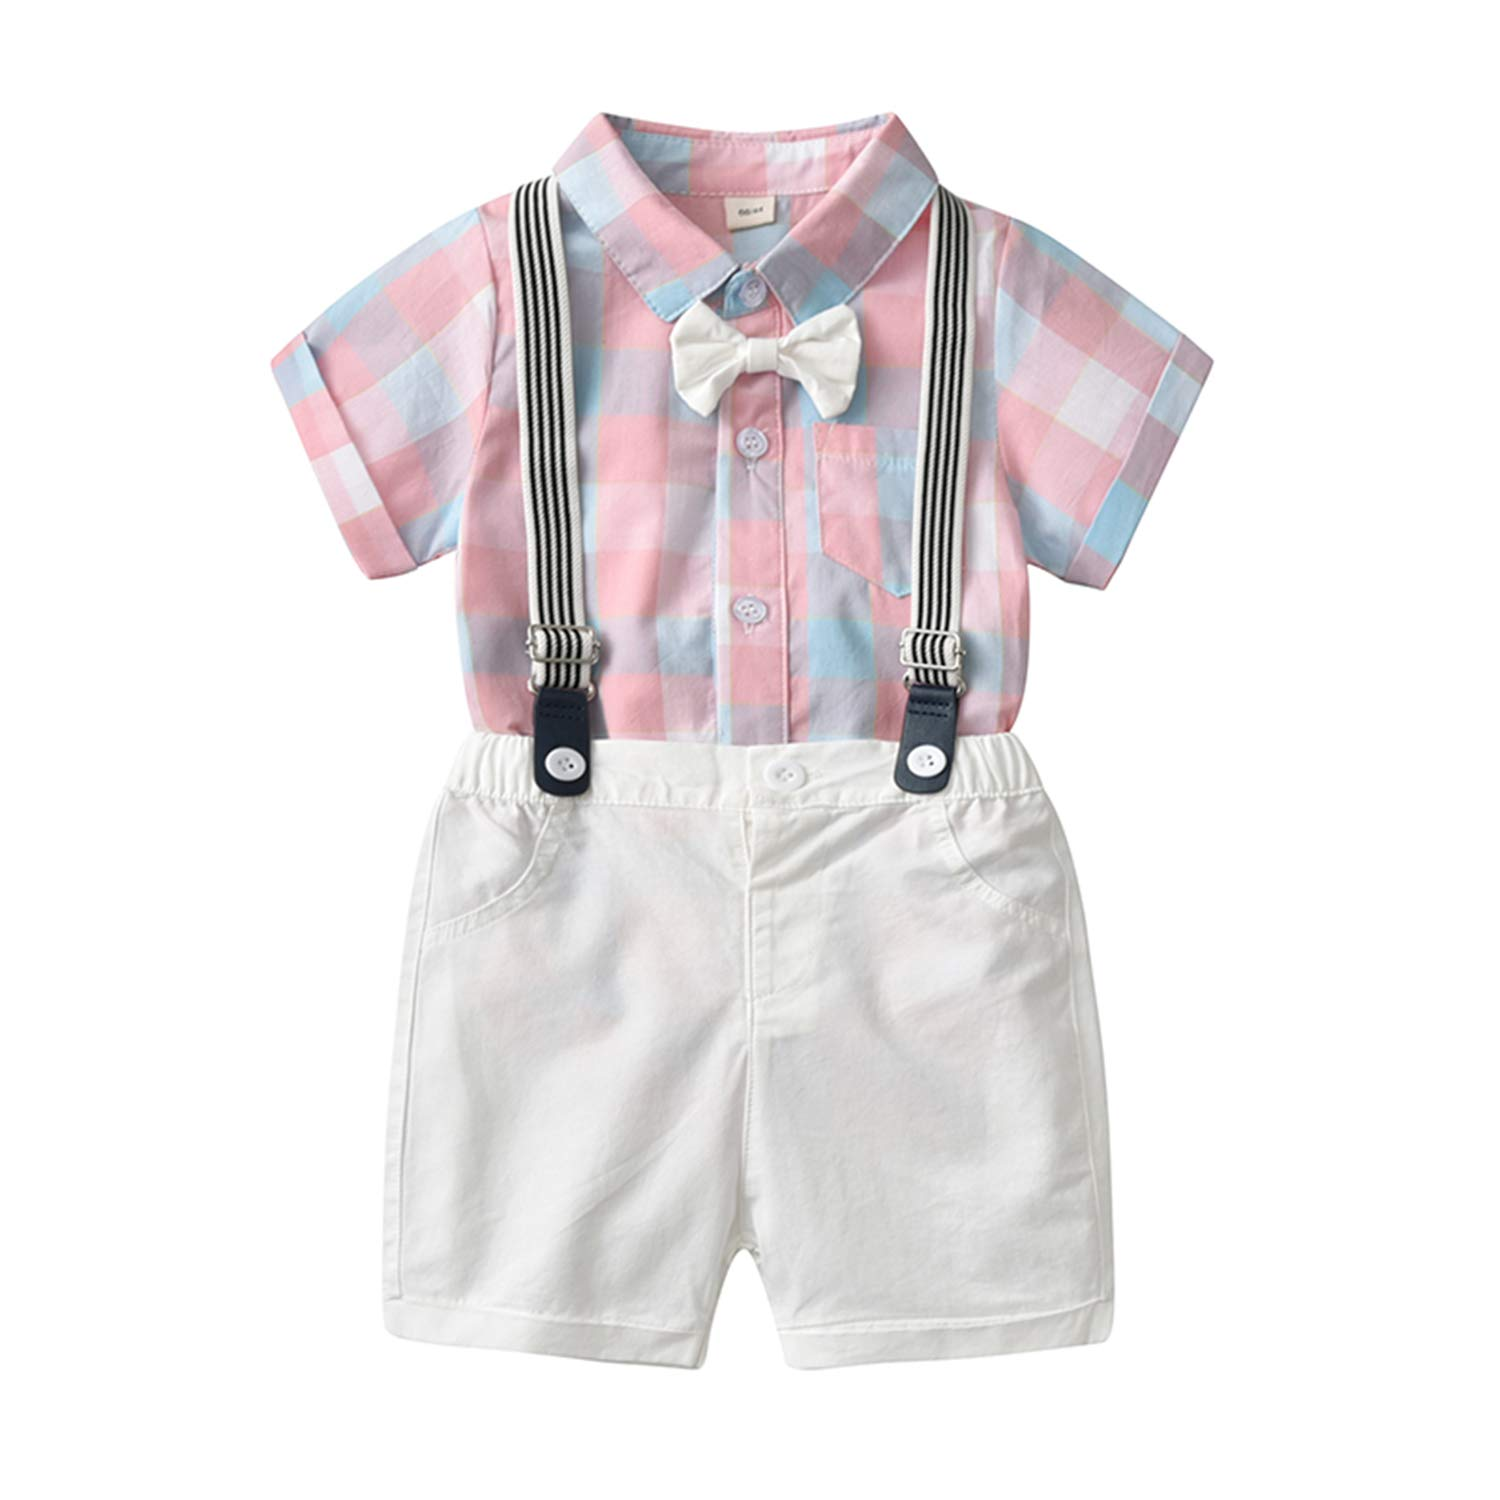 Baby Boys Gentleman Outfits Suits, Infant Short Sleeves Shirt+Bib Pants+Bow Tie Overalls Clothes Set